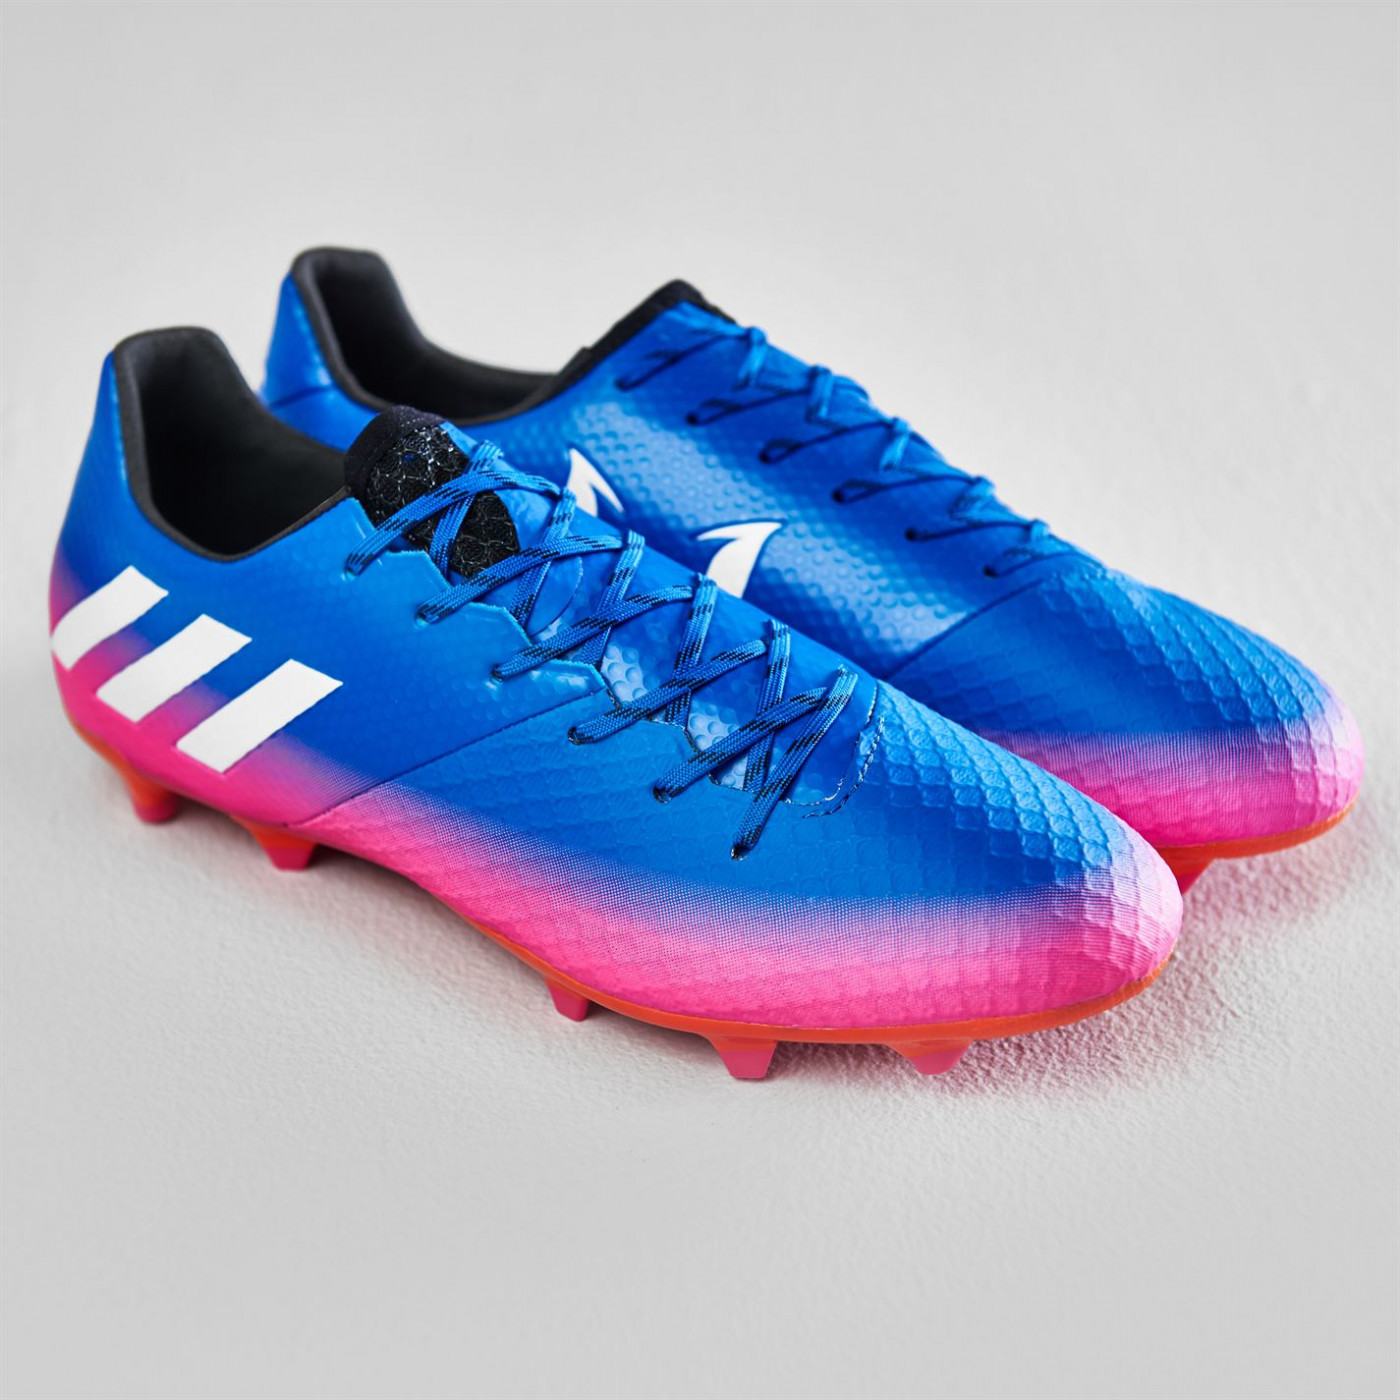 Adidas Messi 16.2 Fg Football Boots Mens